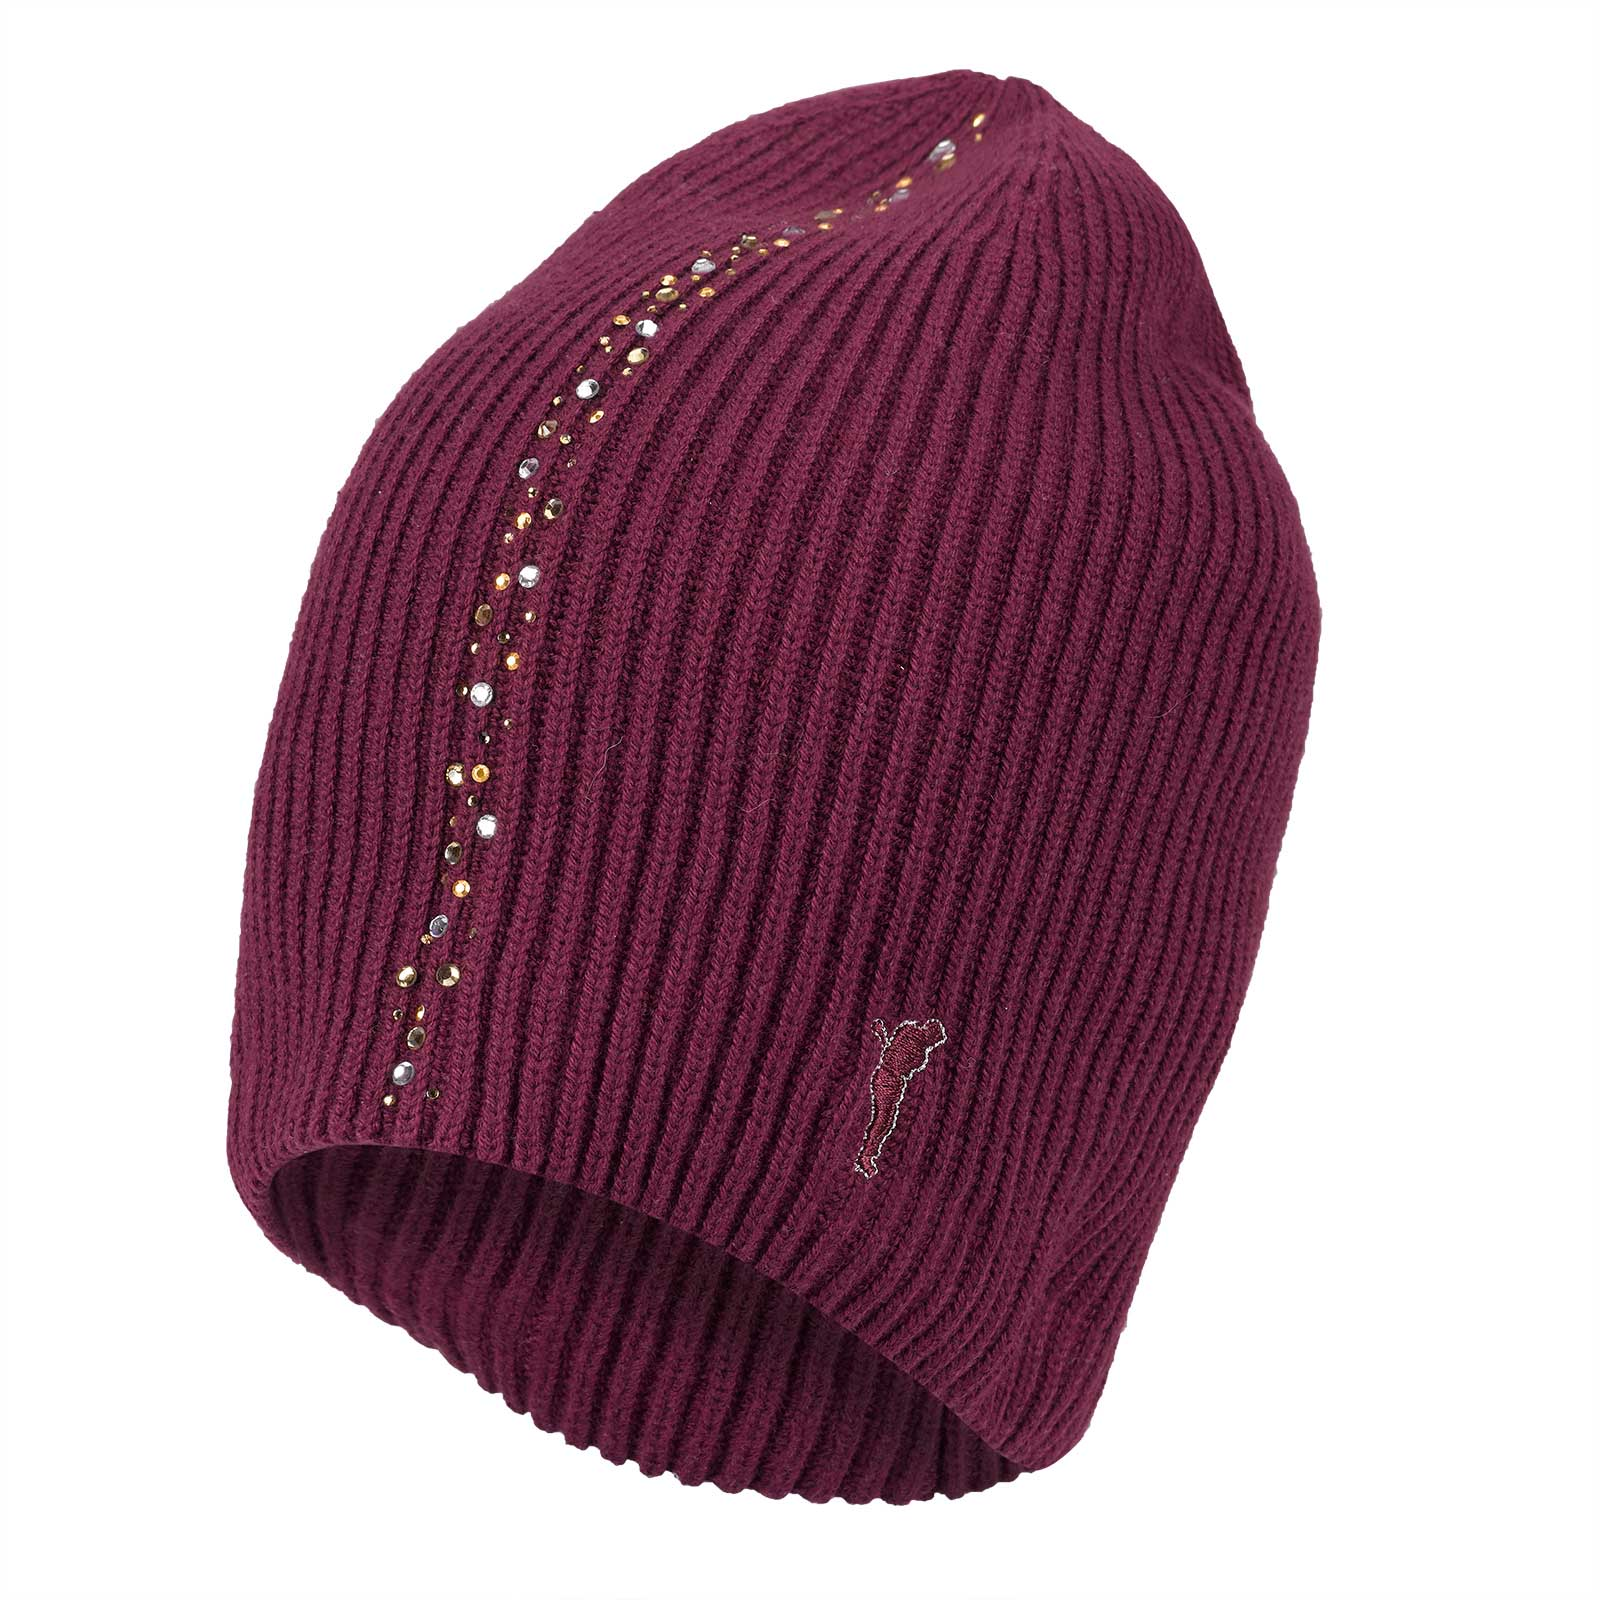 Ladies' soft cashmere blend knitted hat with rhinestones